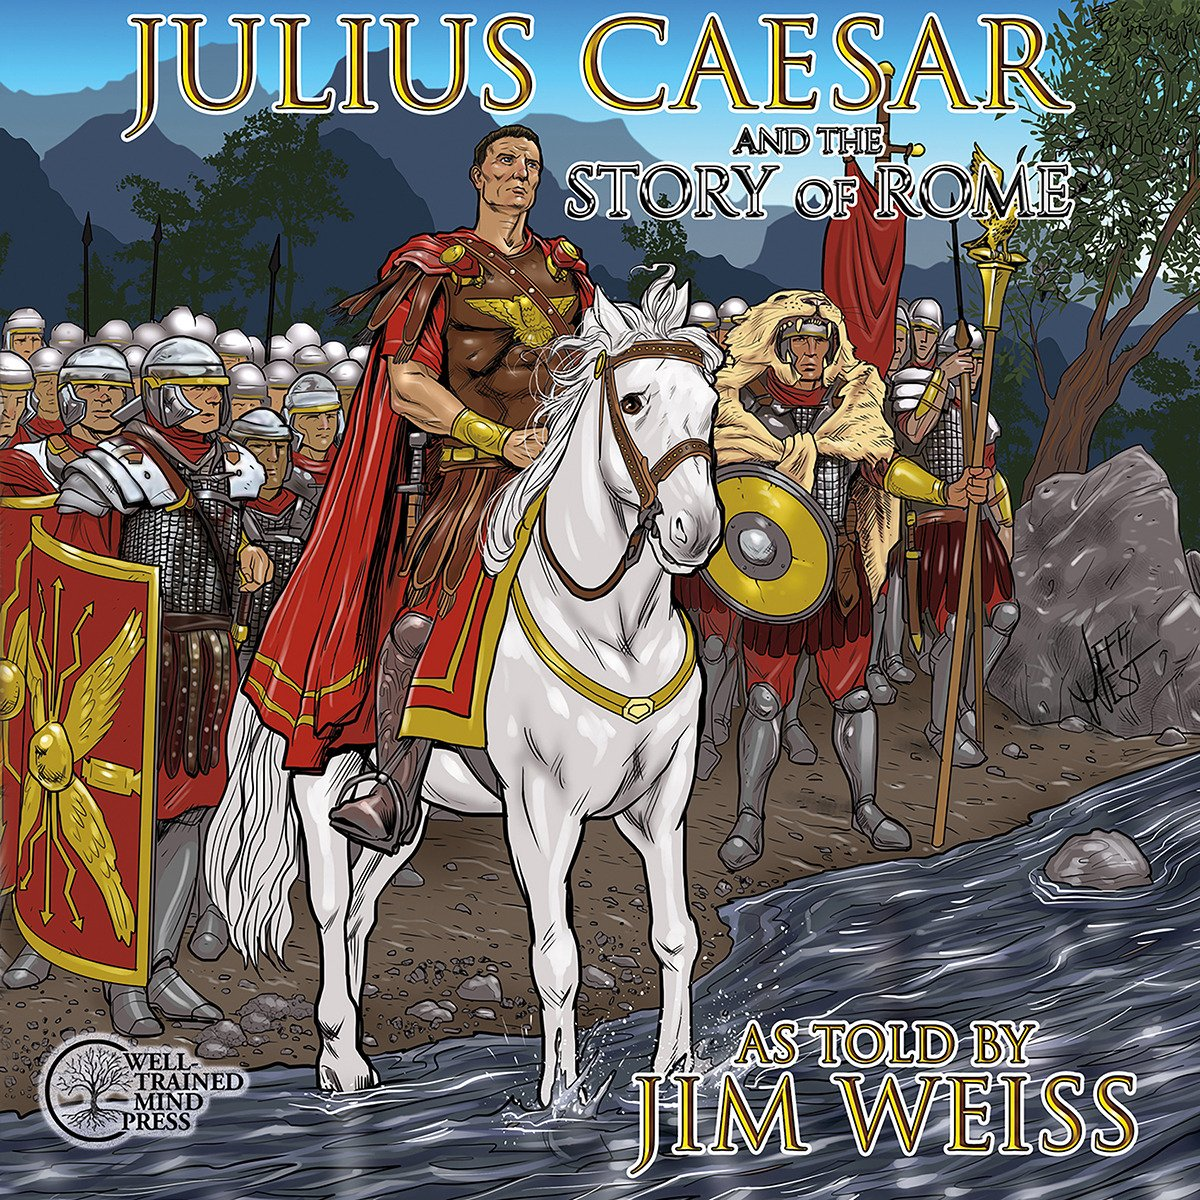 Julius Caesar & The Story of Rome by The Well-Trained Mind Press